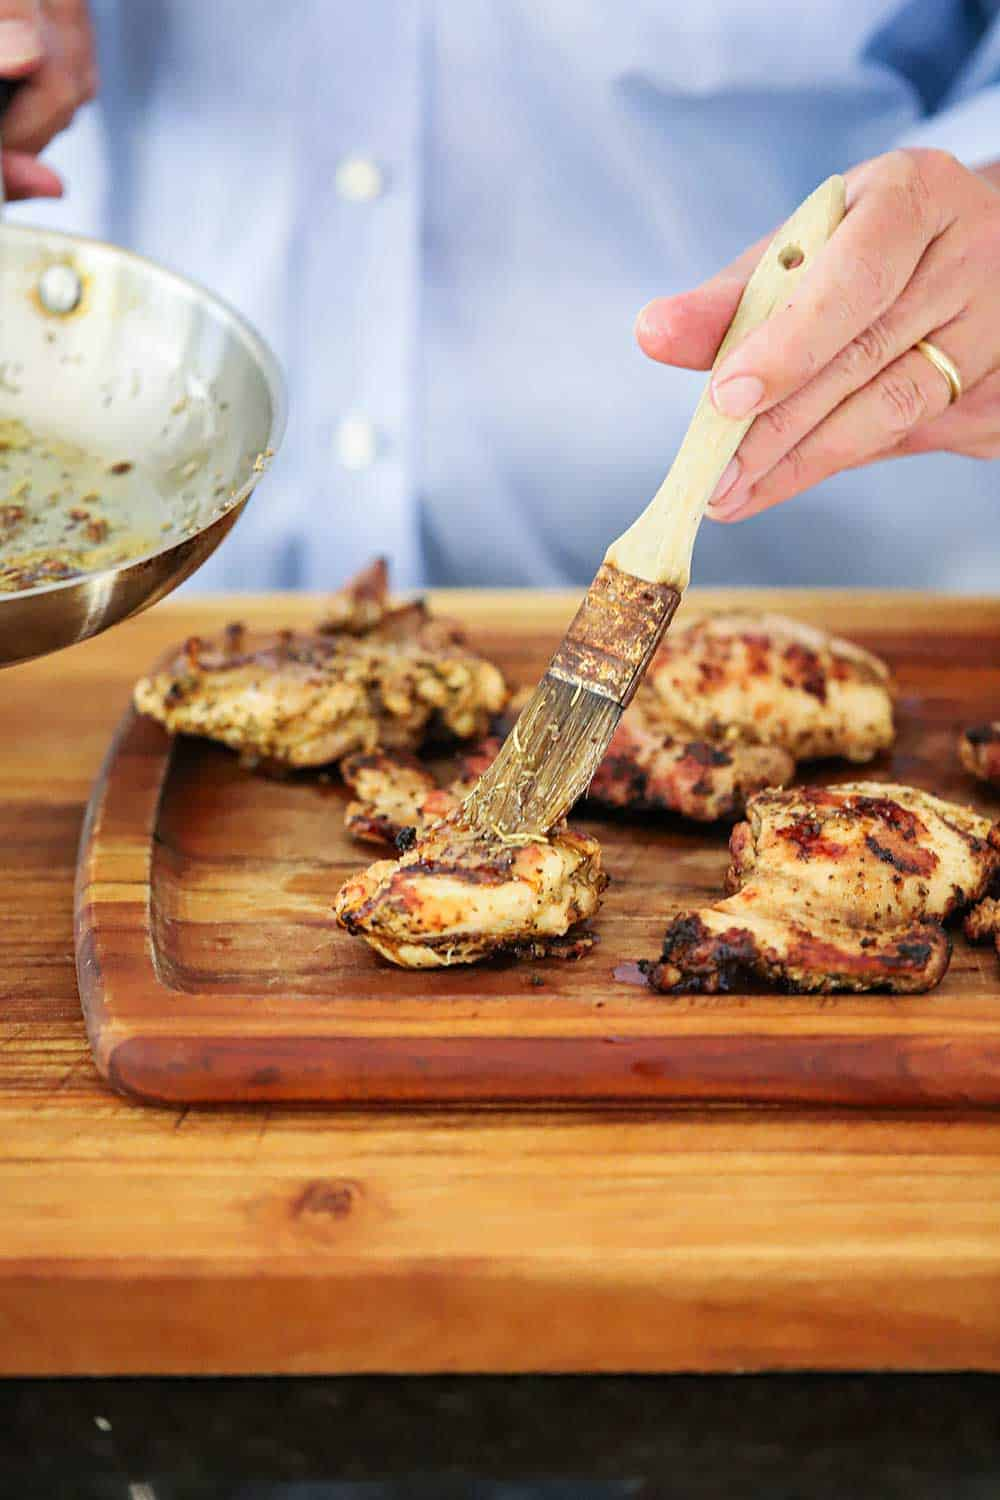 A hand brushing infused oil over grilled chicken thighs on a wooden cutting board.